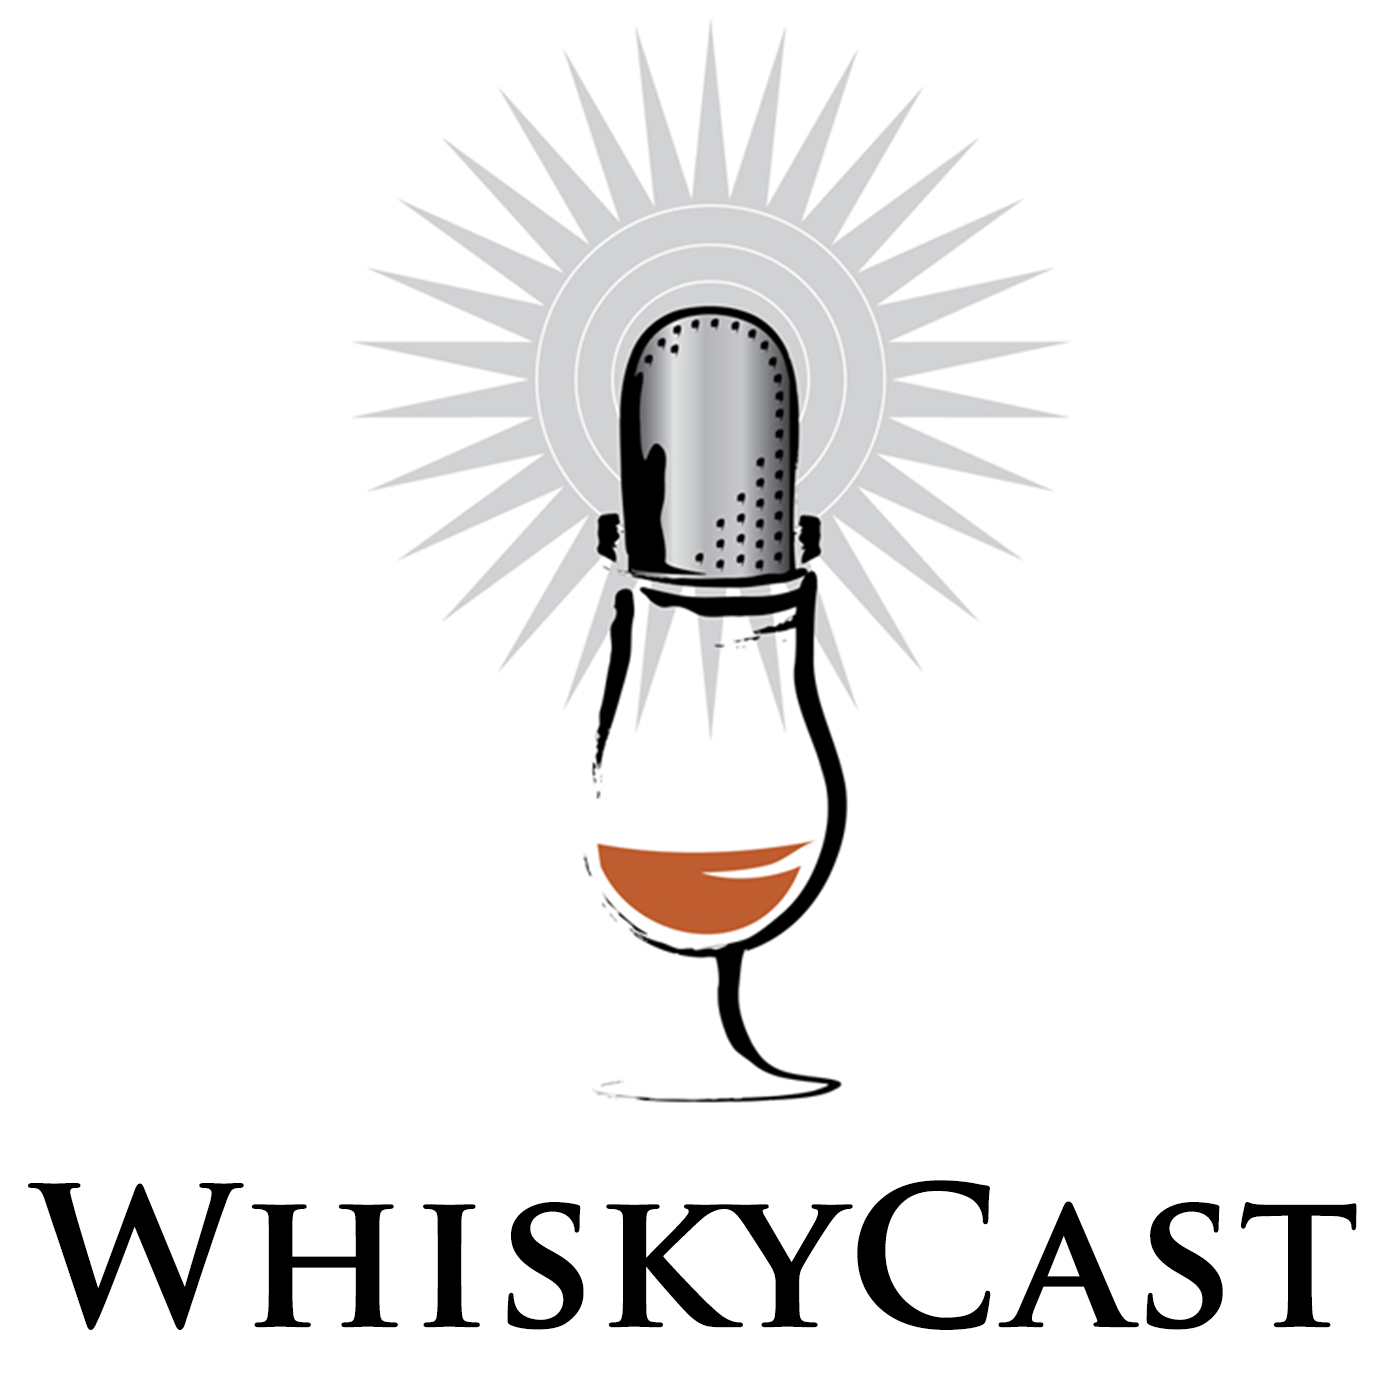 WhiskyCast Episode 434: July 20, 2013